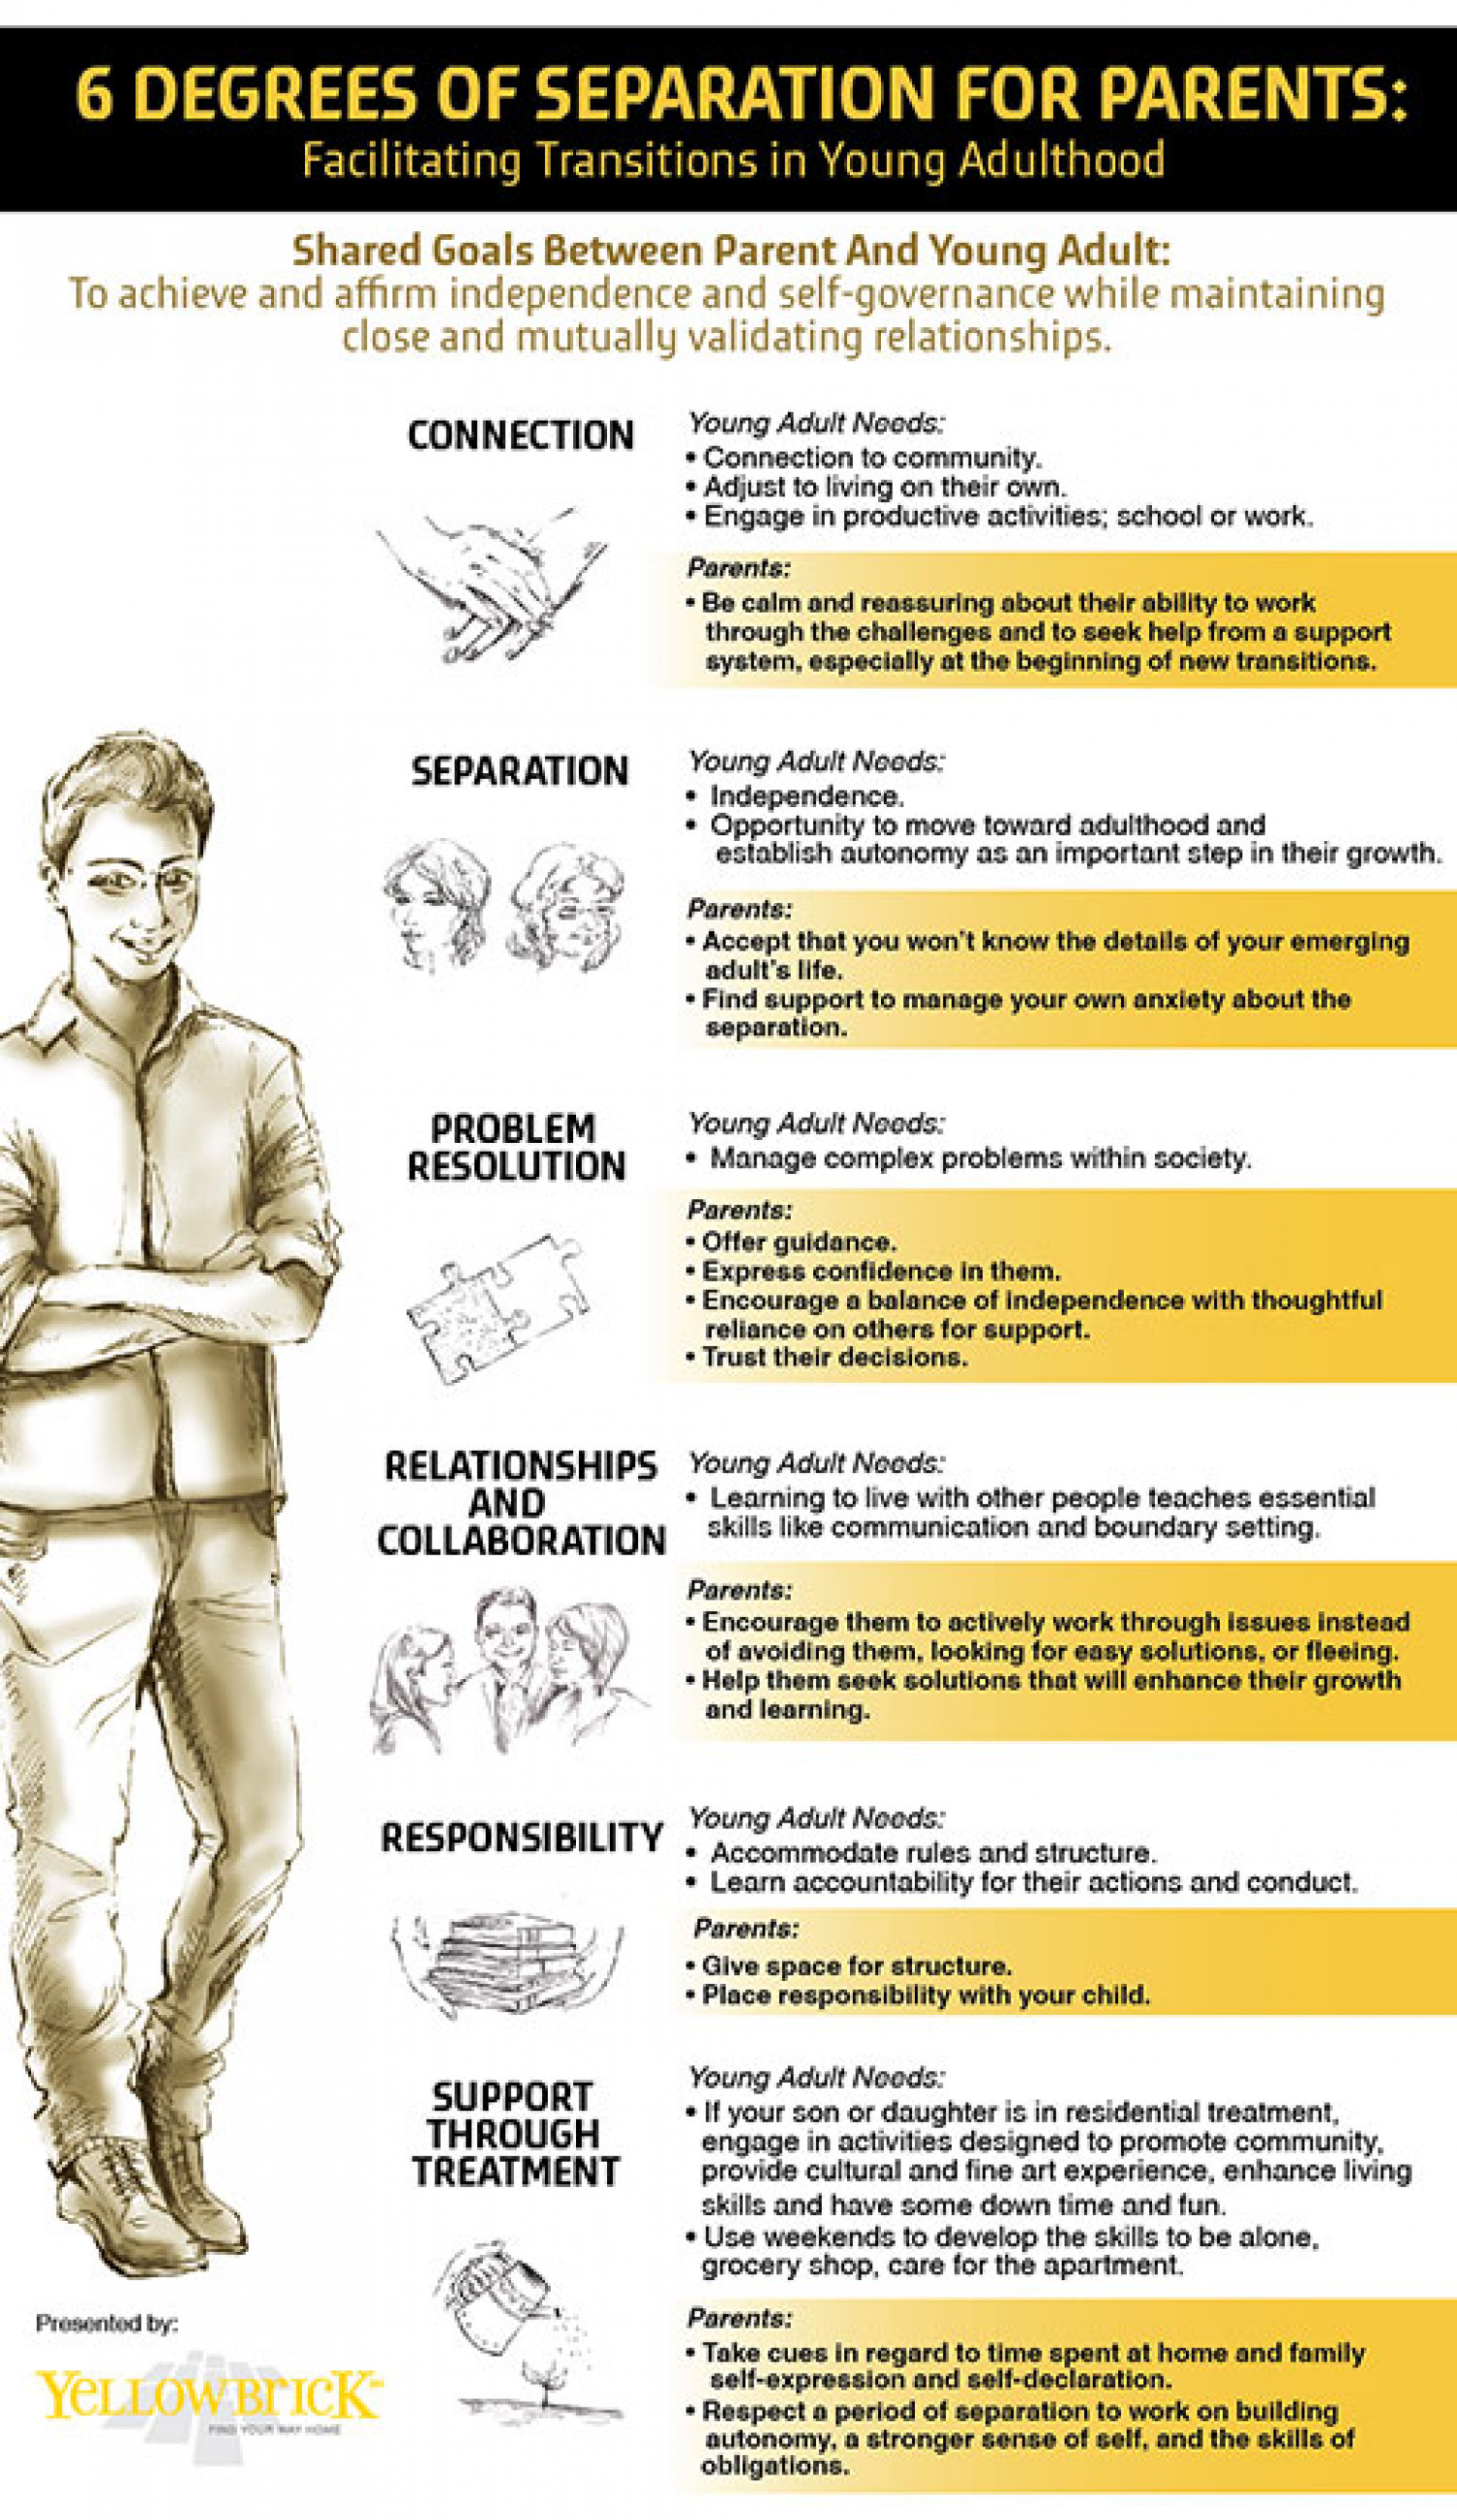 6 Degrees Of Separation For Parents Infographic